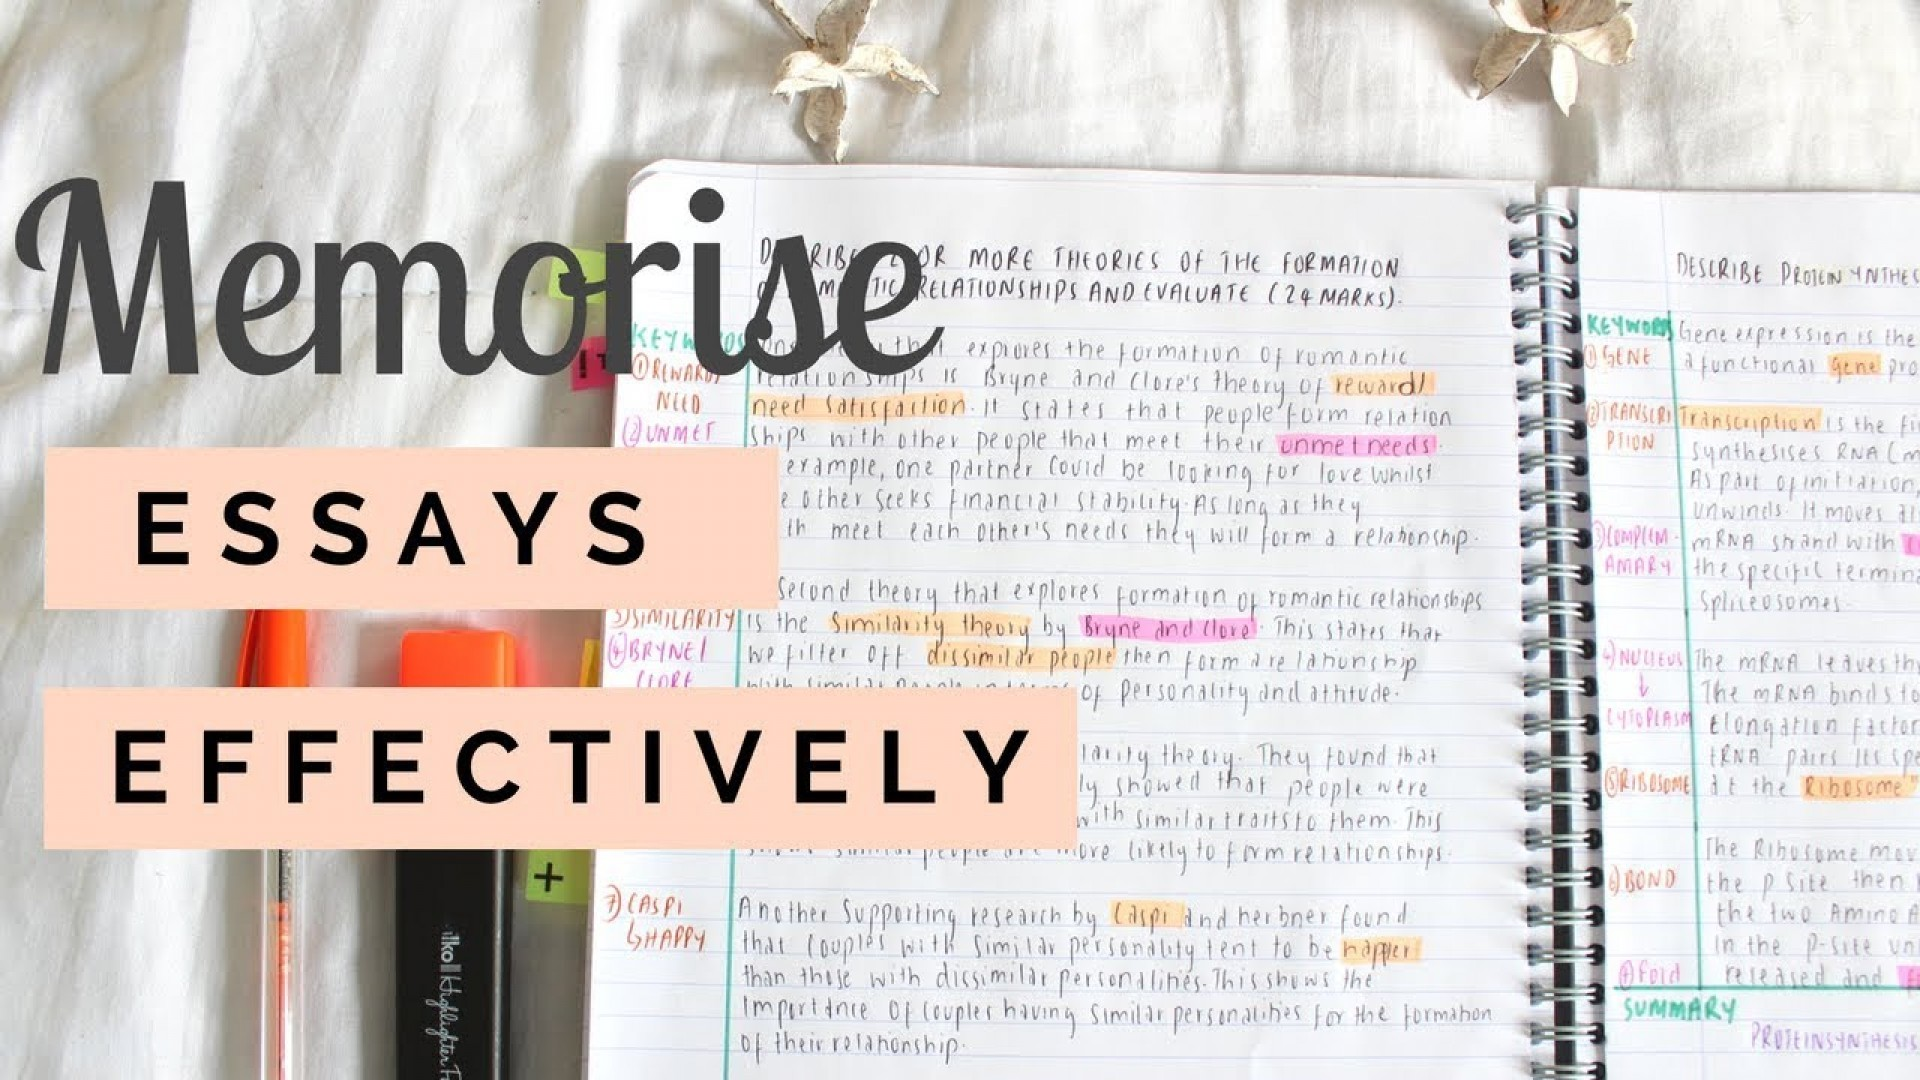 001 How To Memorise An Essay In Hour Maxresdefault Unbelievable A Few Hours Remember 1 1920